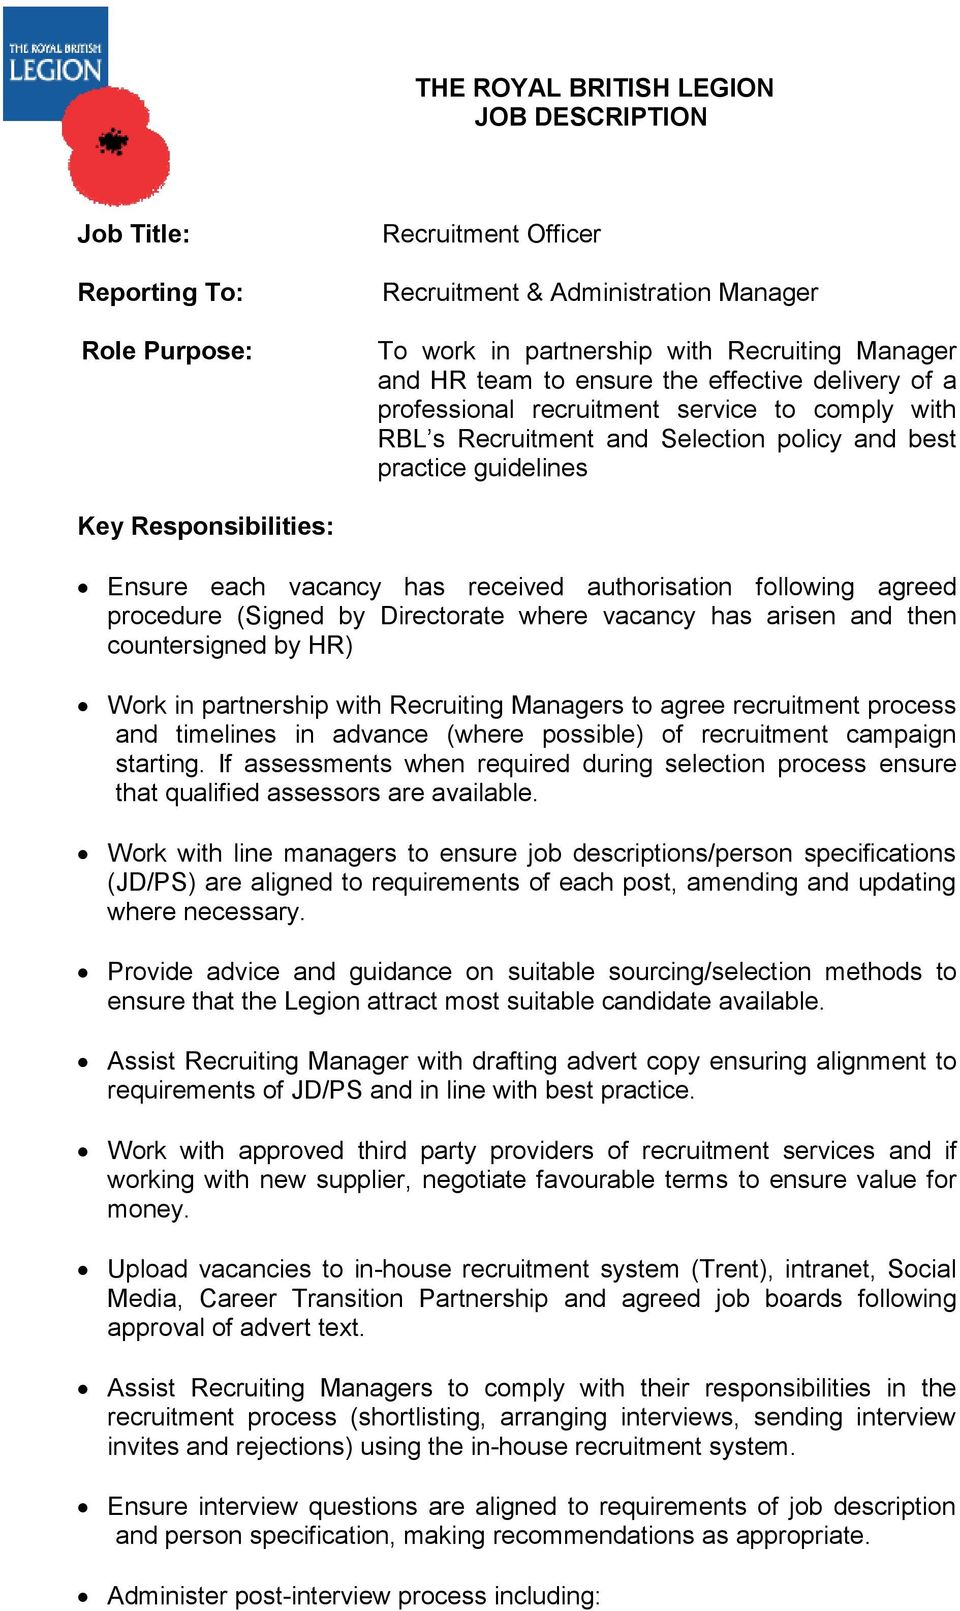 received authorisation following agreed procedure (Signed by irectorate where vacancy has arisen and then countersigned by HR) Work in partnership with Recruiting Managers to agree recruitment